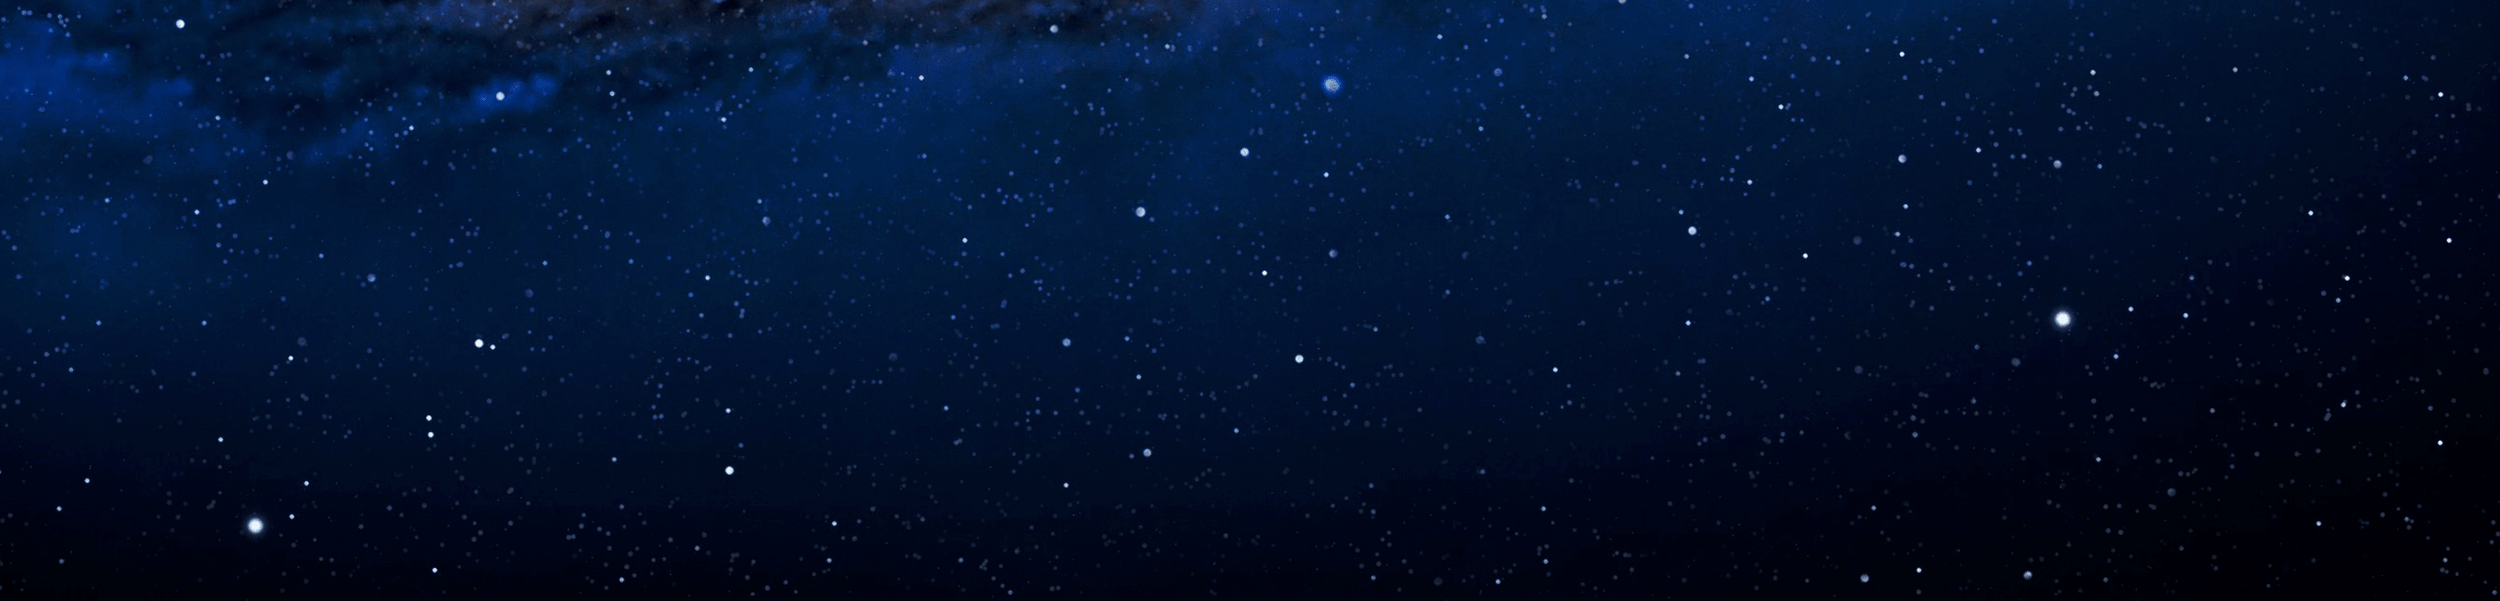 space-min.png